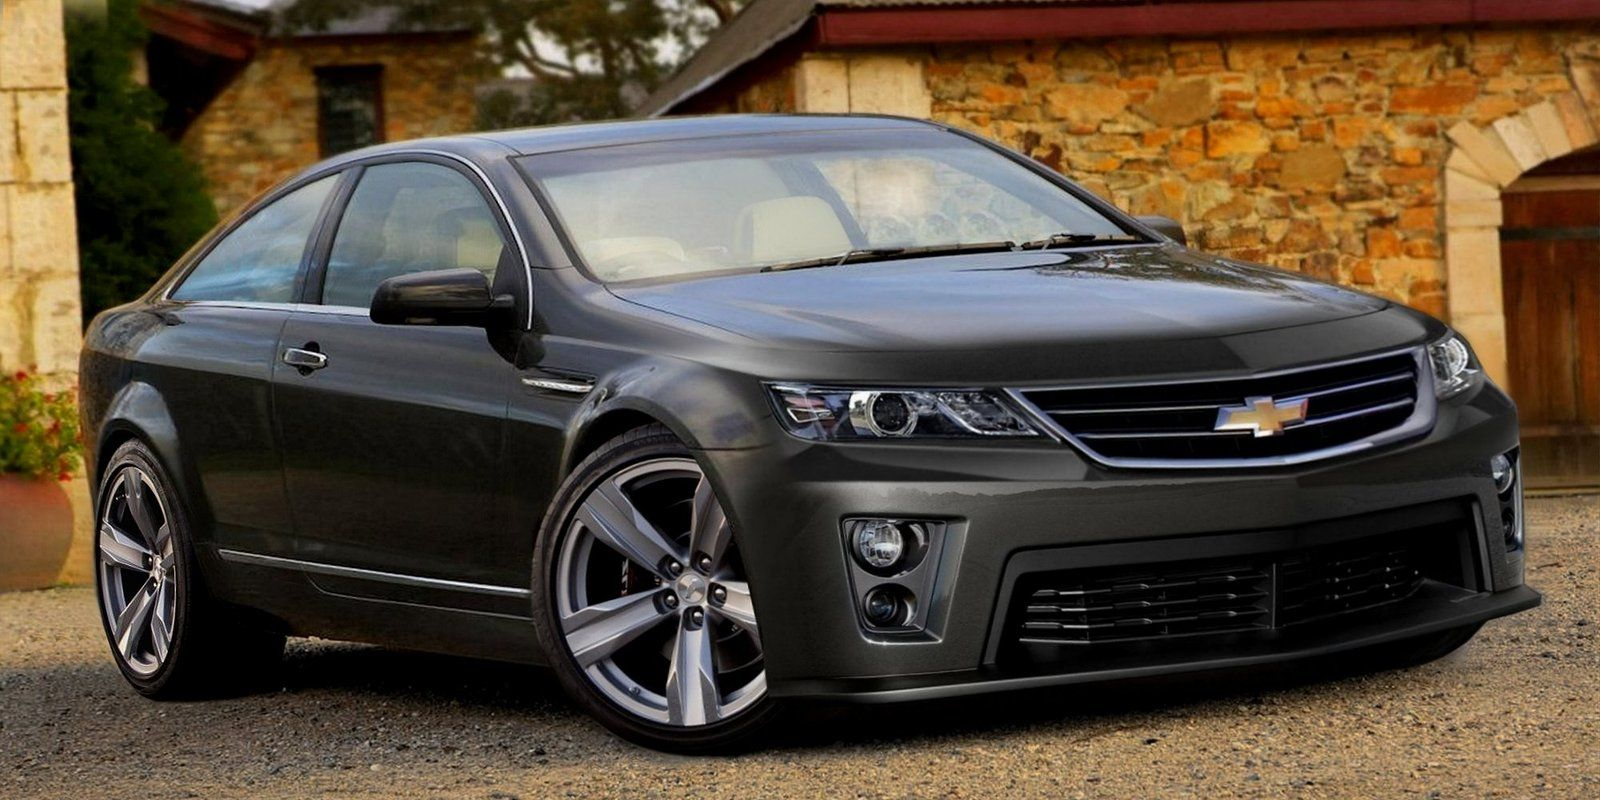 2014 chevrolet ss performance sedan with racing dna coupe rendering